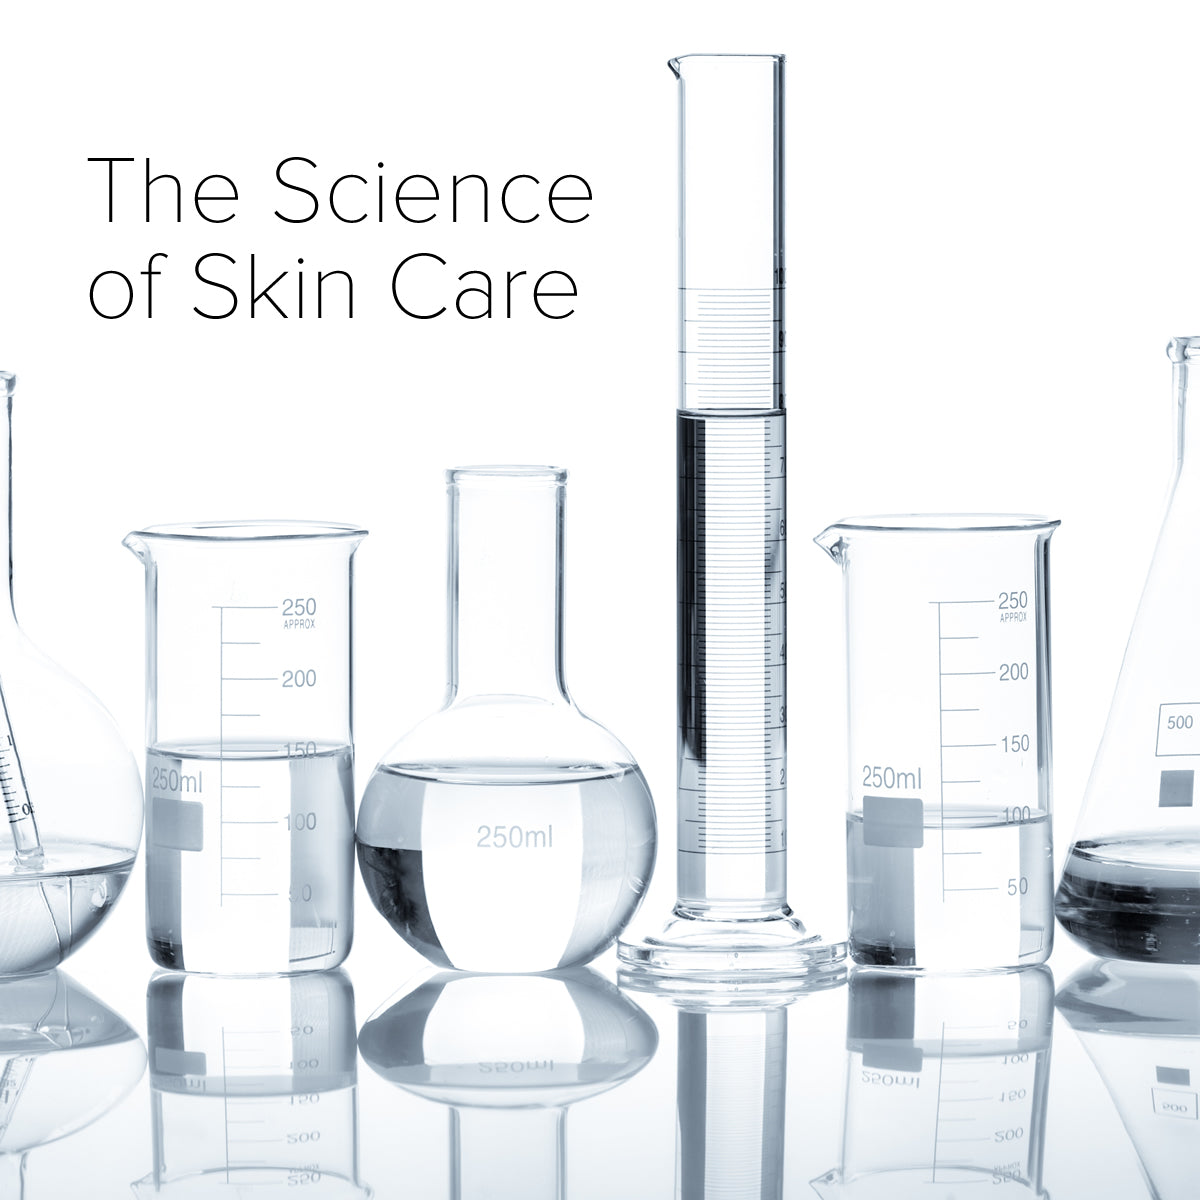 The Science of Skin Care